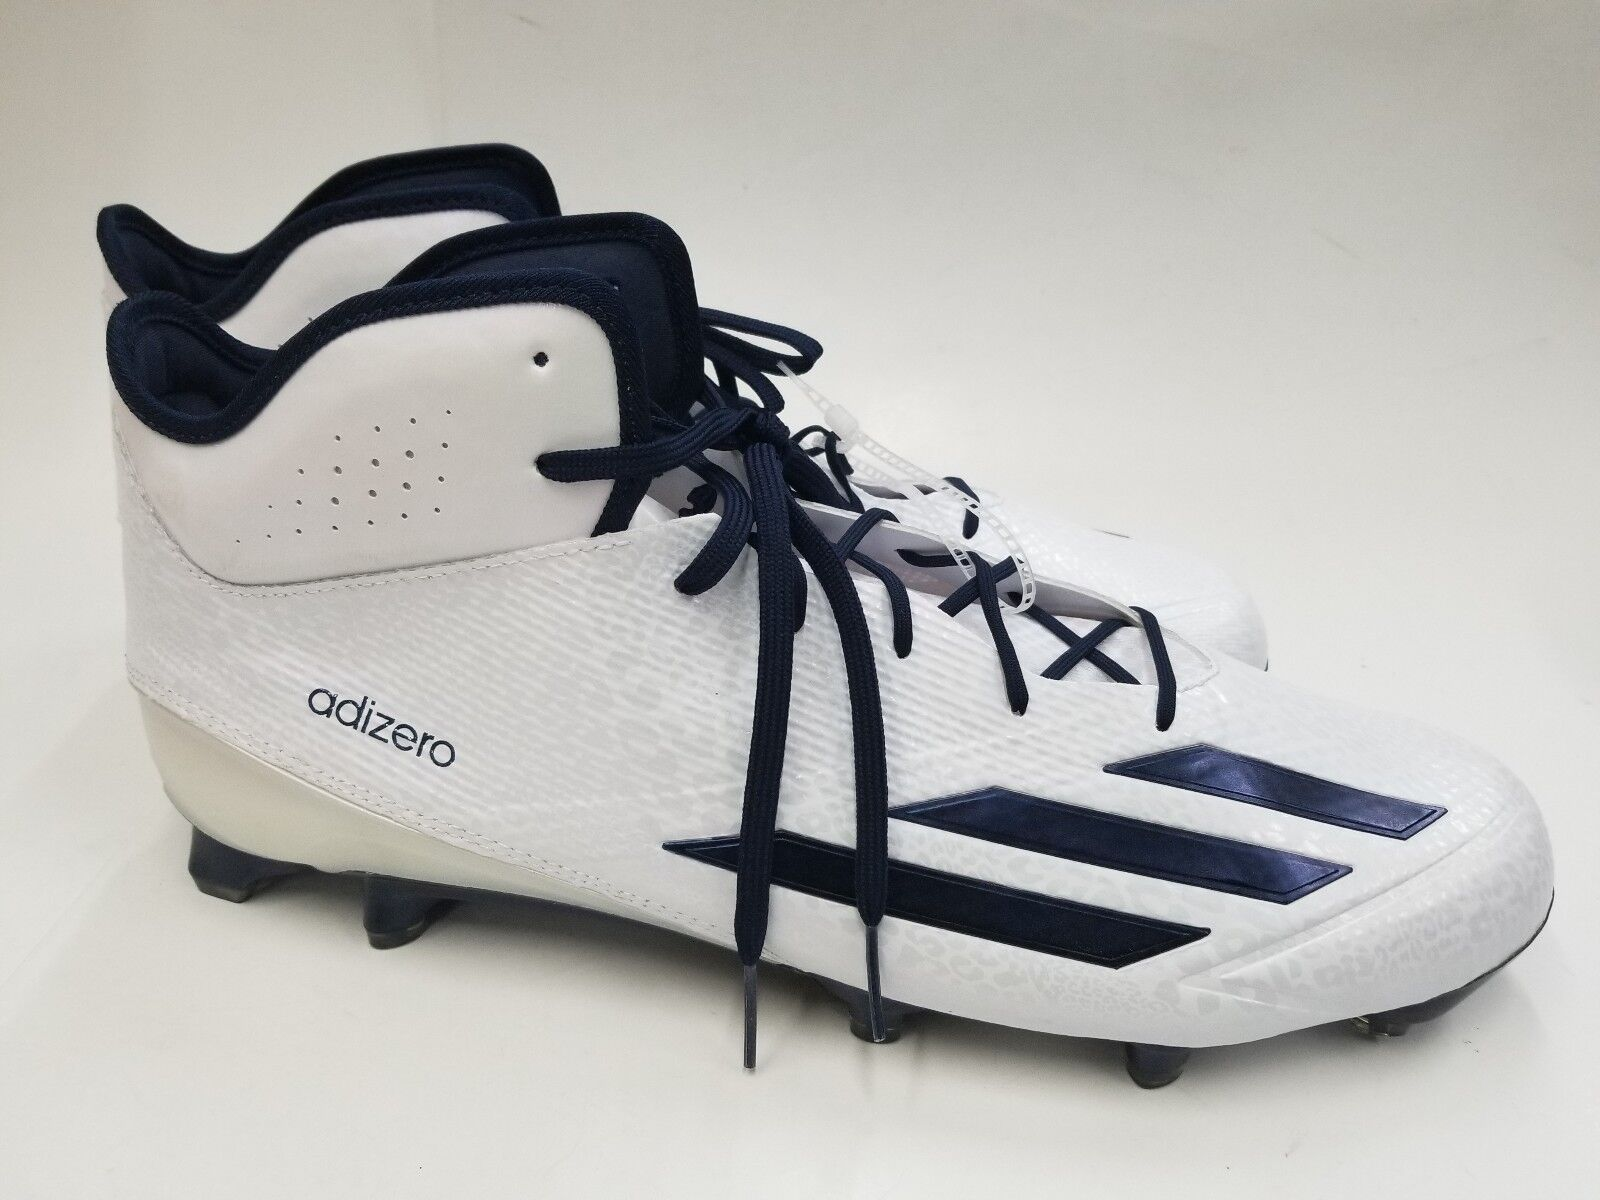 902b9bd0f9b Adidas Adizero 5Star Mid Cleat And Navy bluee Size 18 White 6.0 npdcgs5124- Men